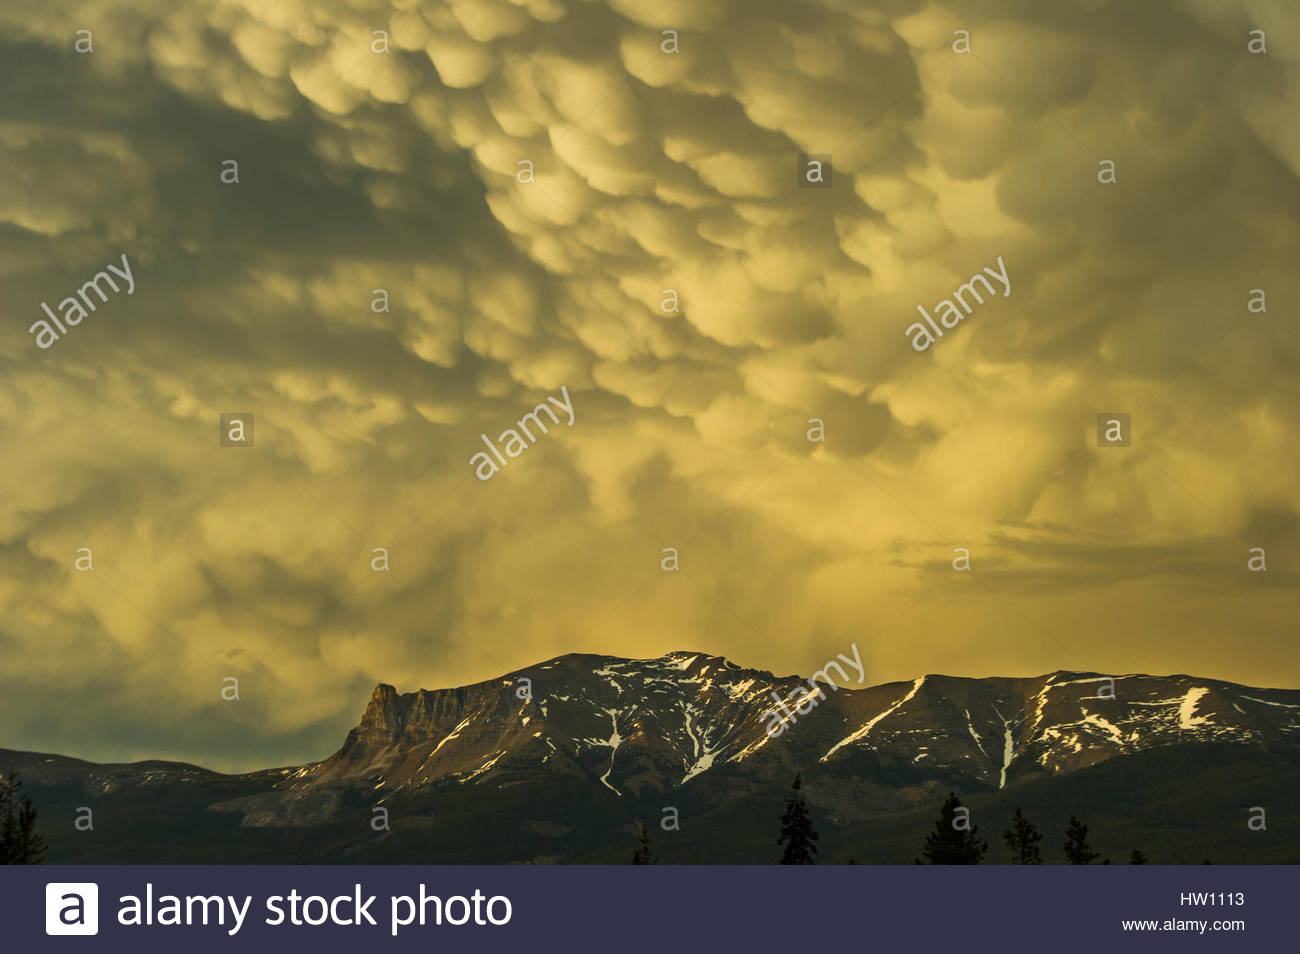 Thick bubble clouds gleam above a mountain. - Stock Image